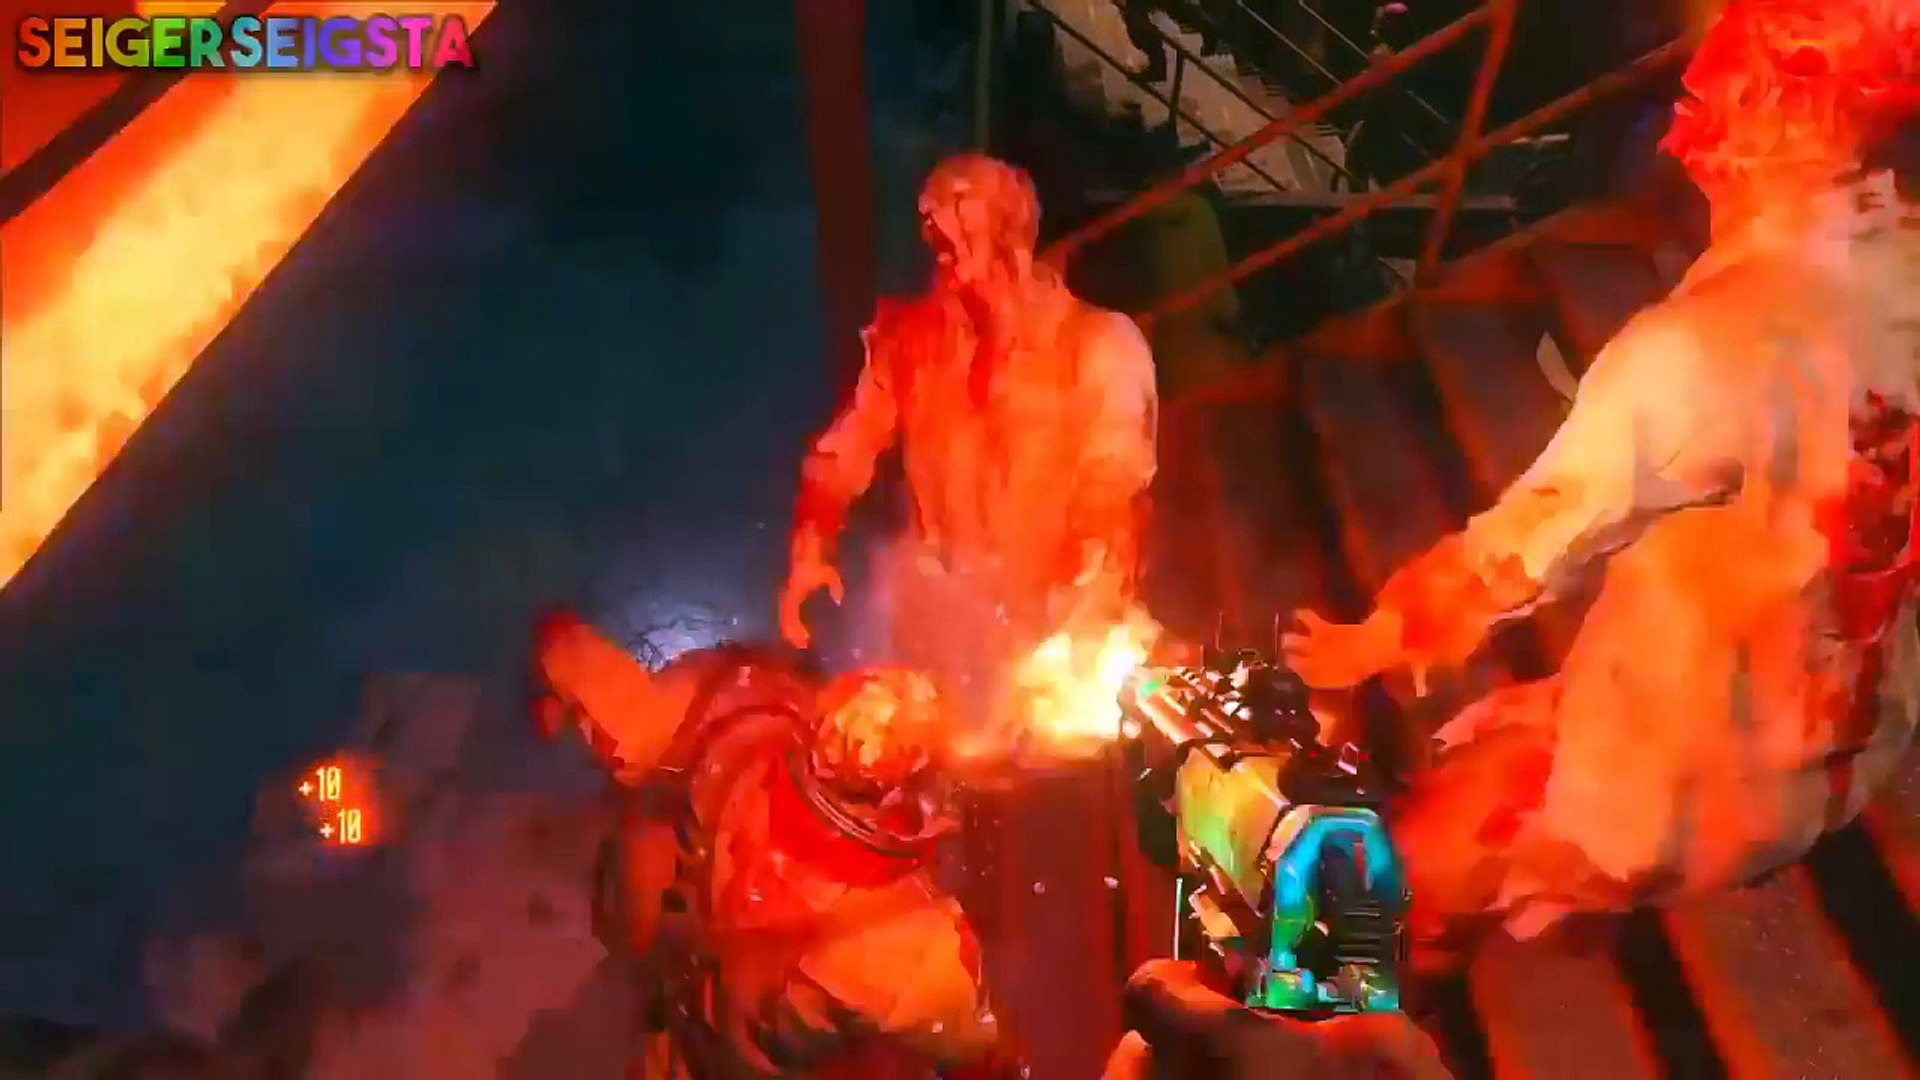 Zombies Chronicles BO3 Glitches NEW ASCENSION JUMP in Pile up Glitch (BO3 Glitches)